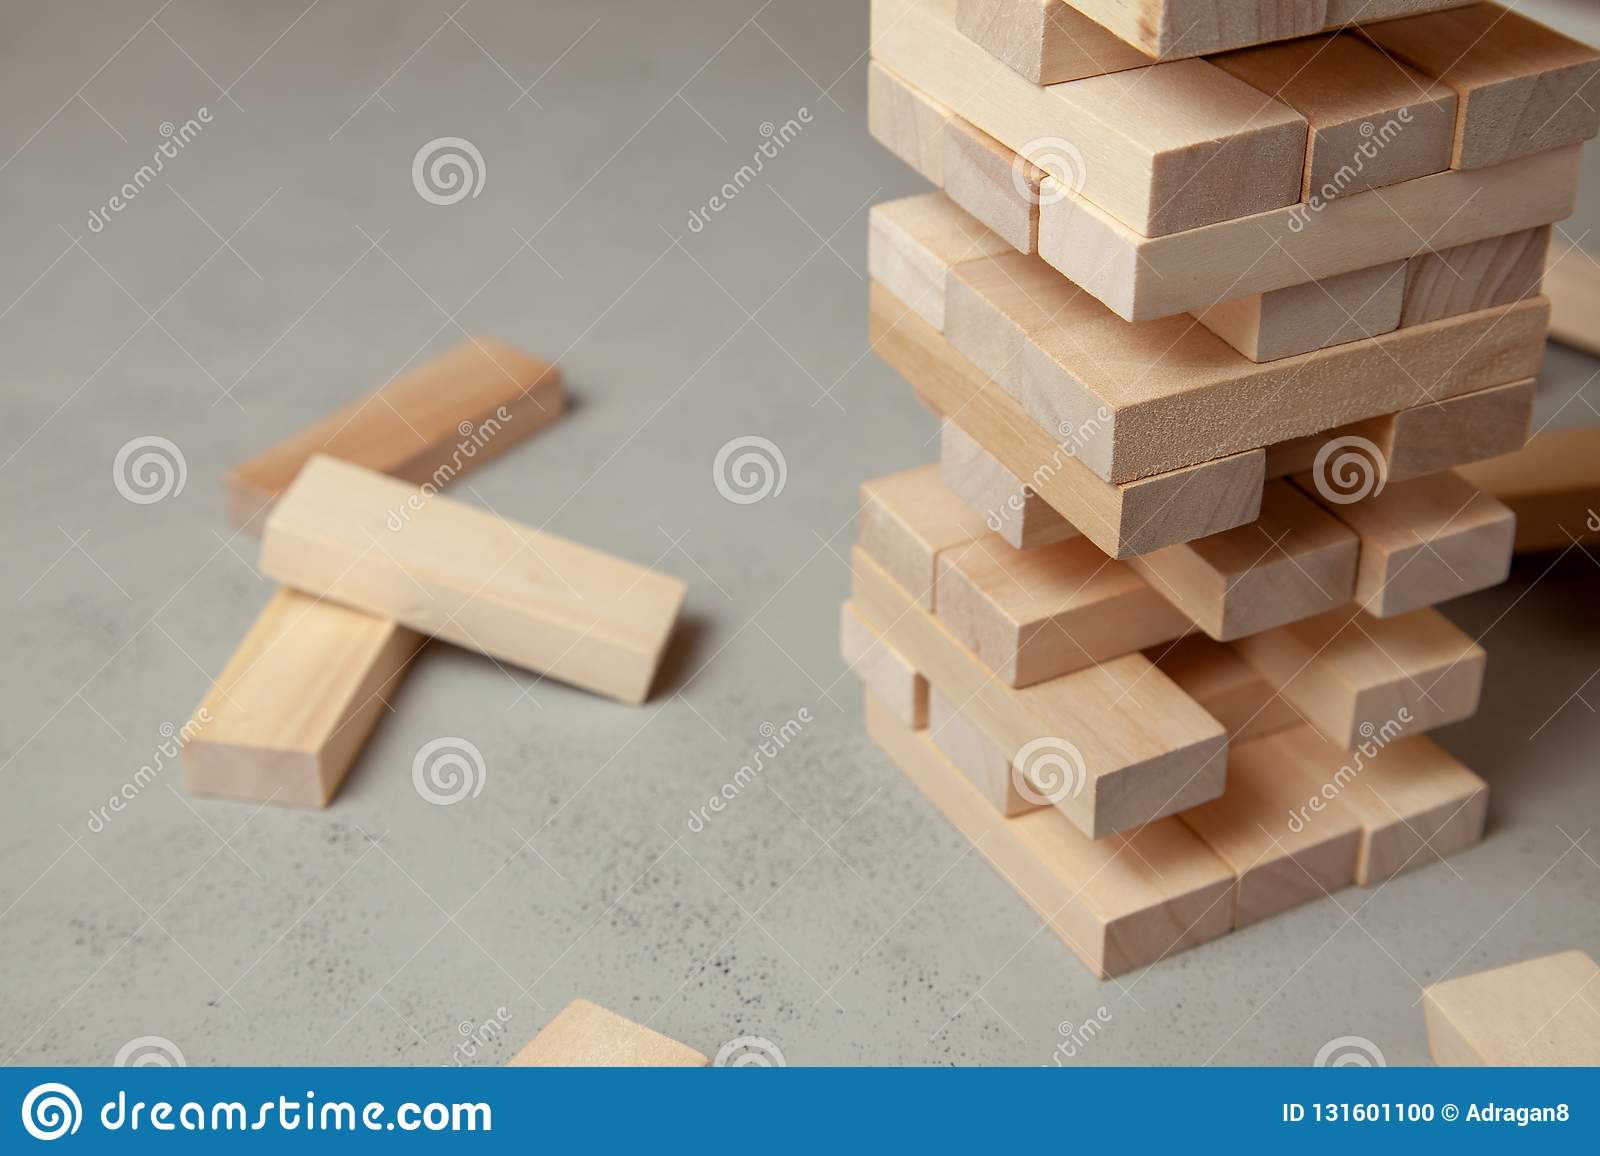 Tower of wooden blocks on gray background. Board game for the whole family or party. Concept of building business or building team